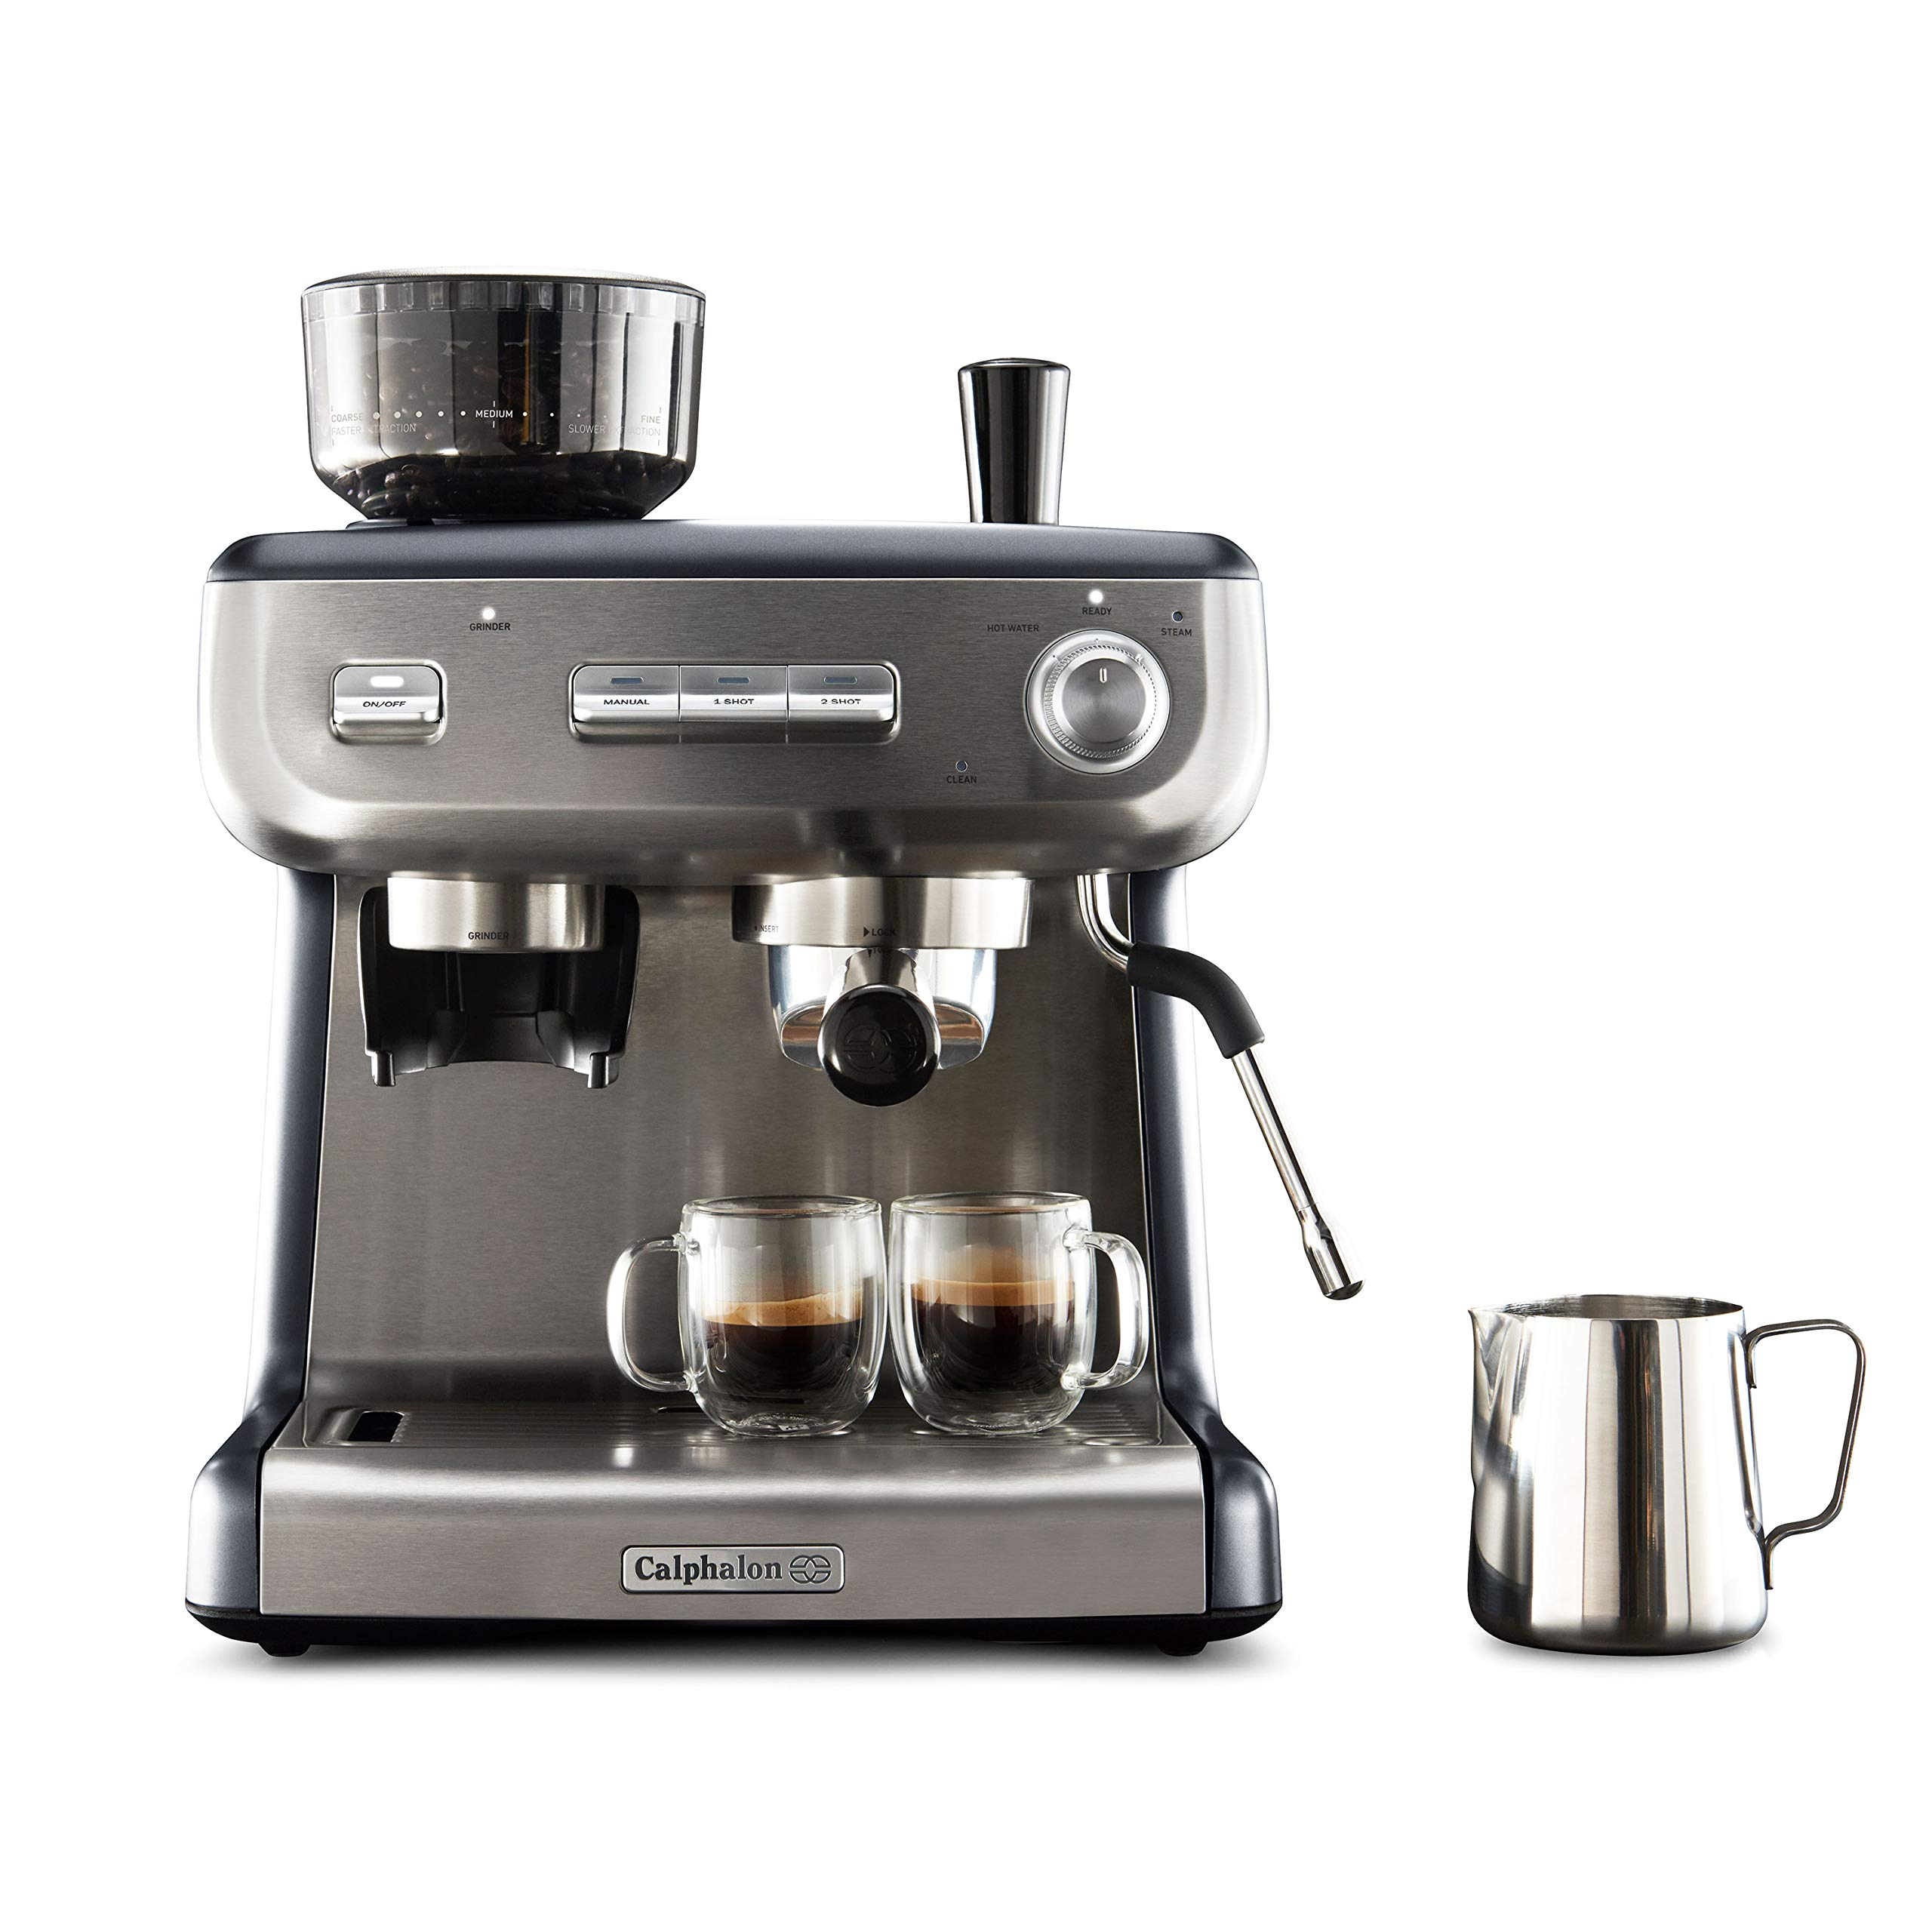 Calphalon BVCLECMPBM1 Temp iQ Espresso Machine with Grinder and Steam Wand, Stainless by Calphalon